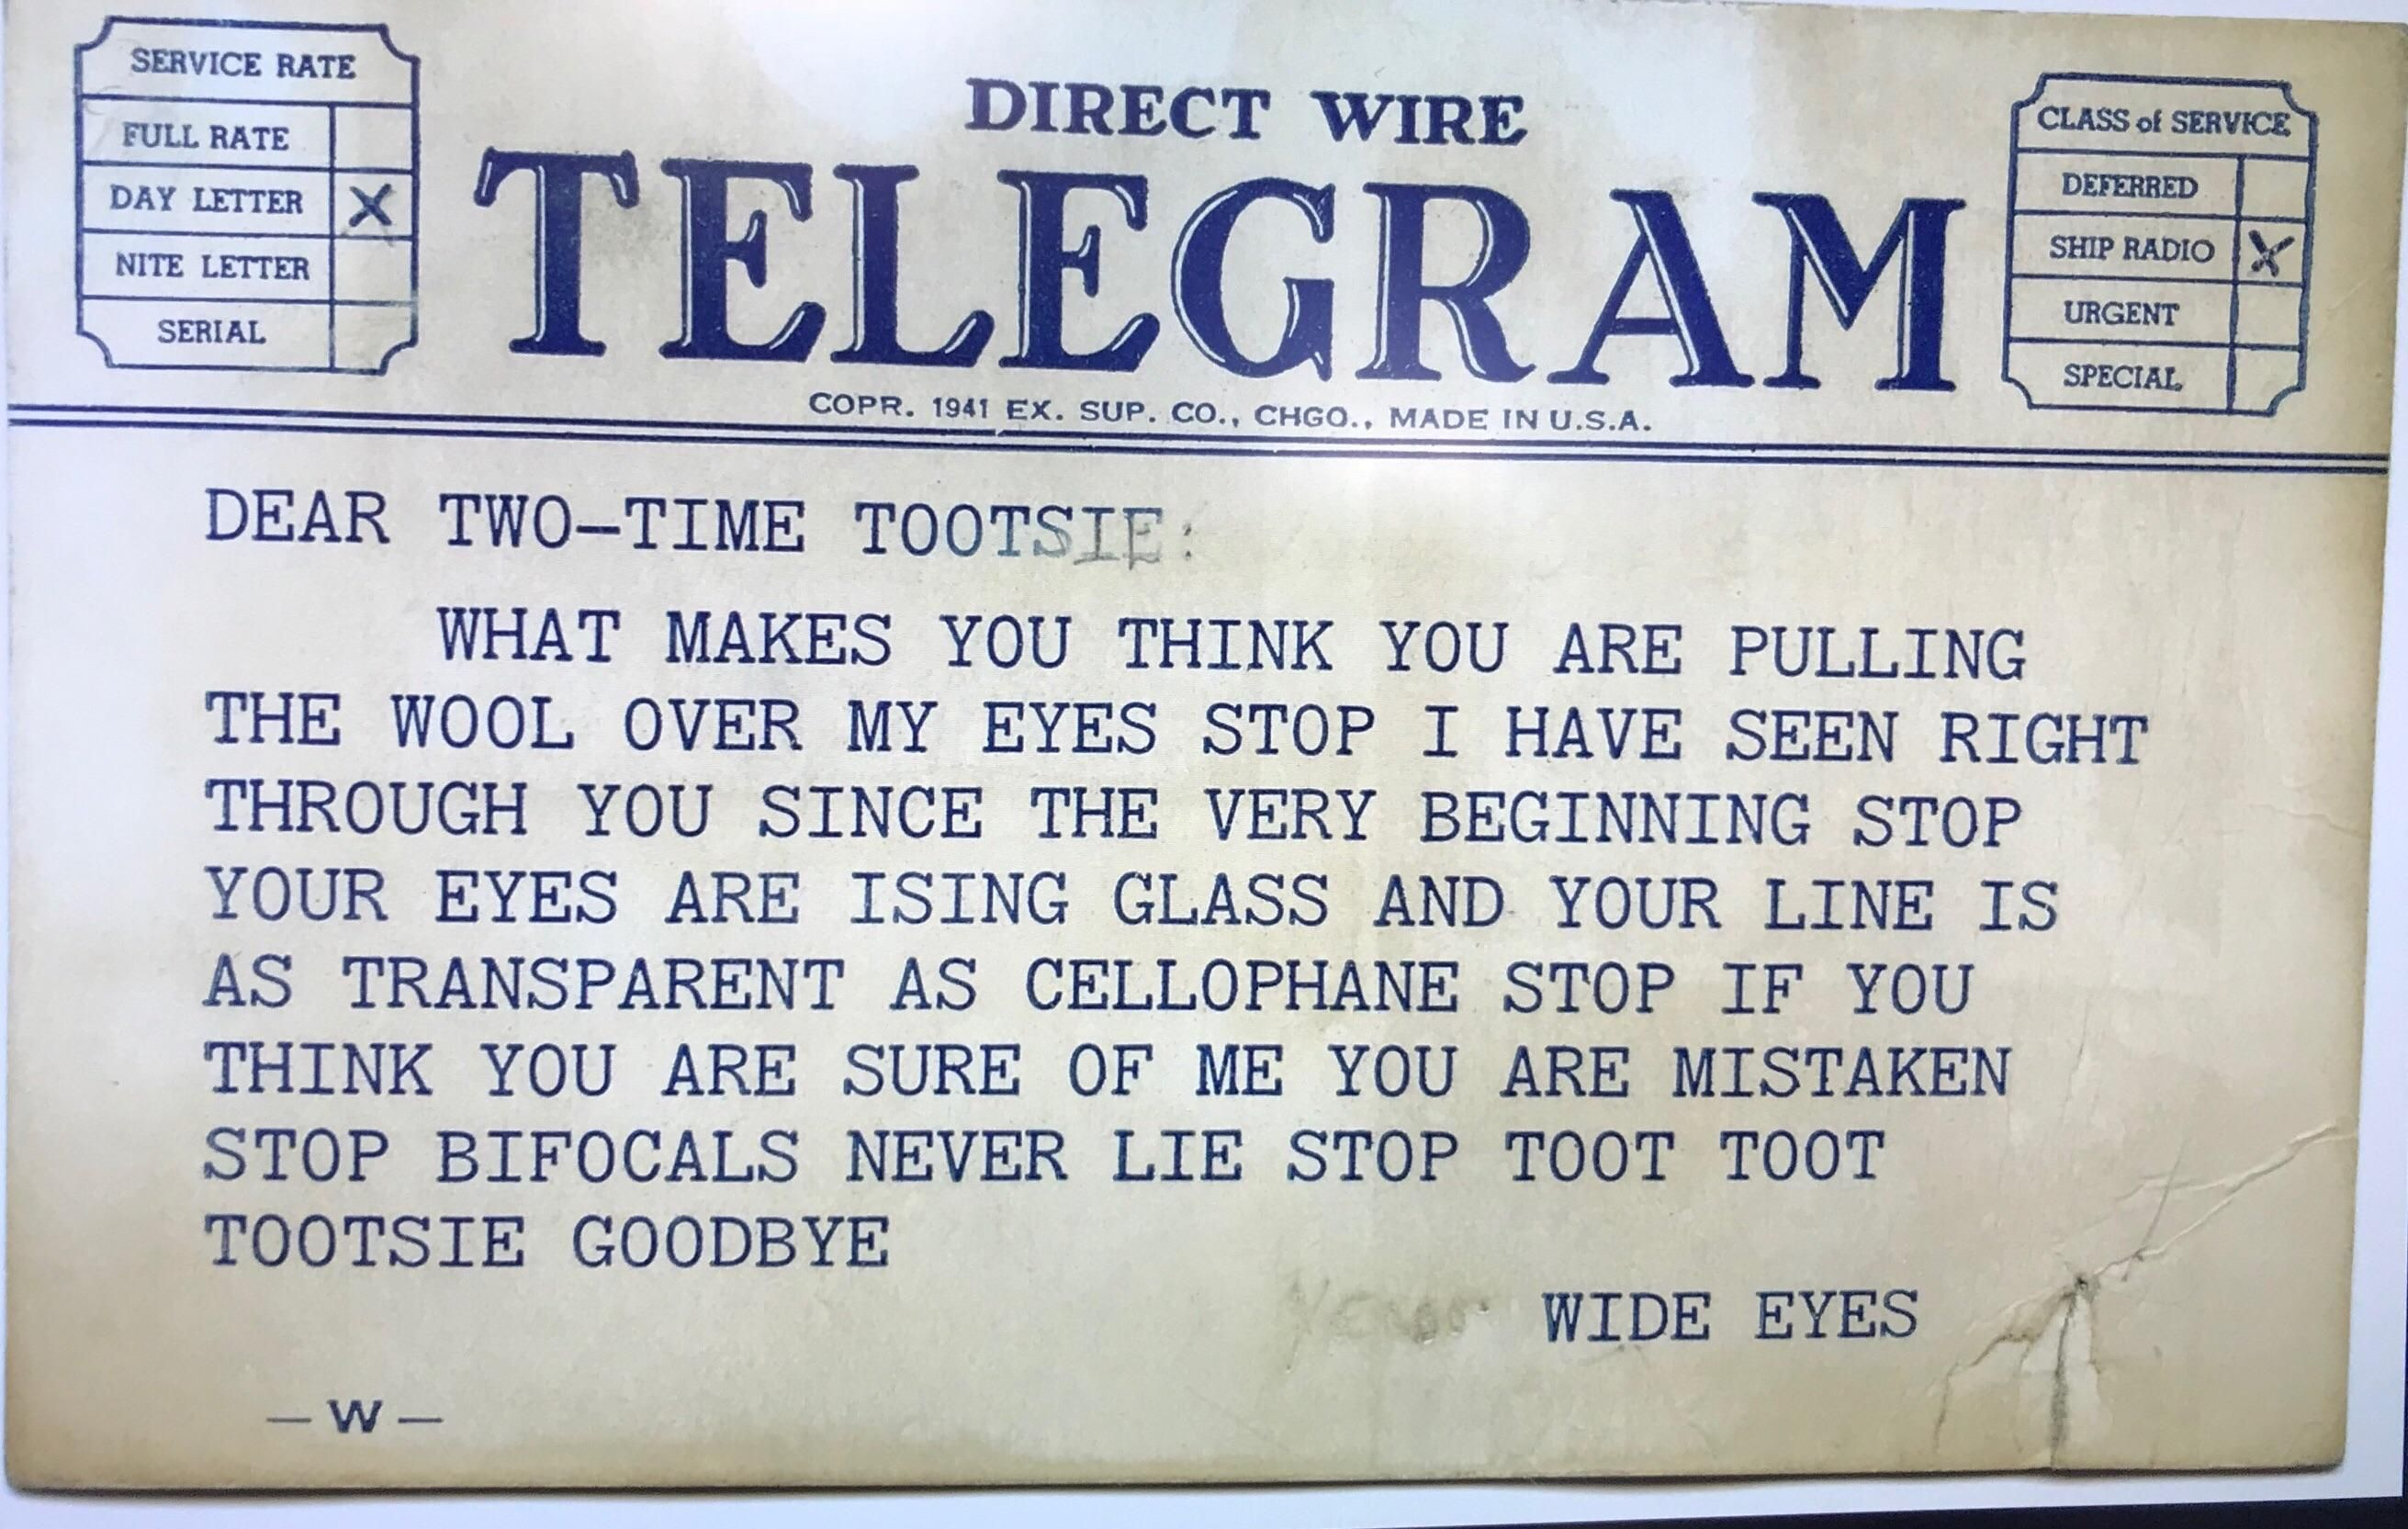 My wife's grandmother broke up with her teenage boyfriend by telegram and kept a copy all these years